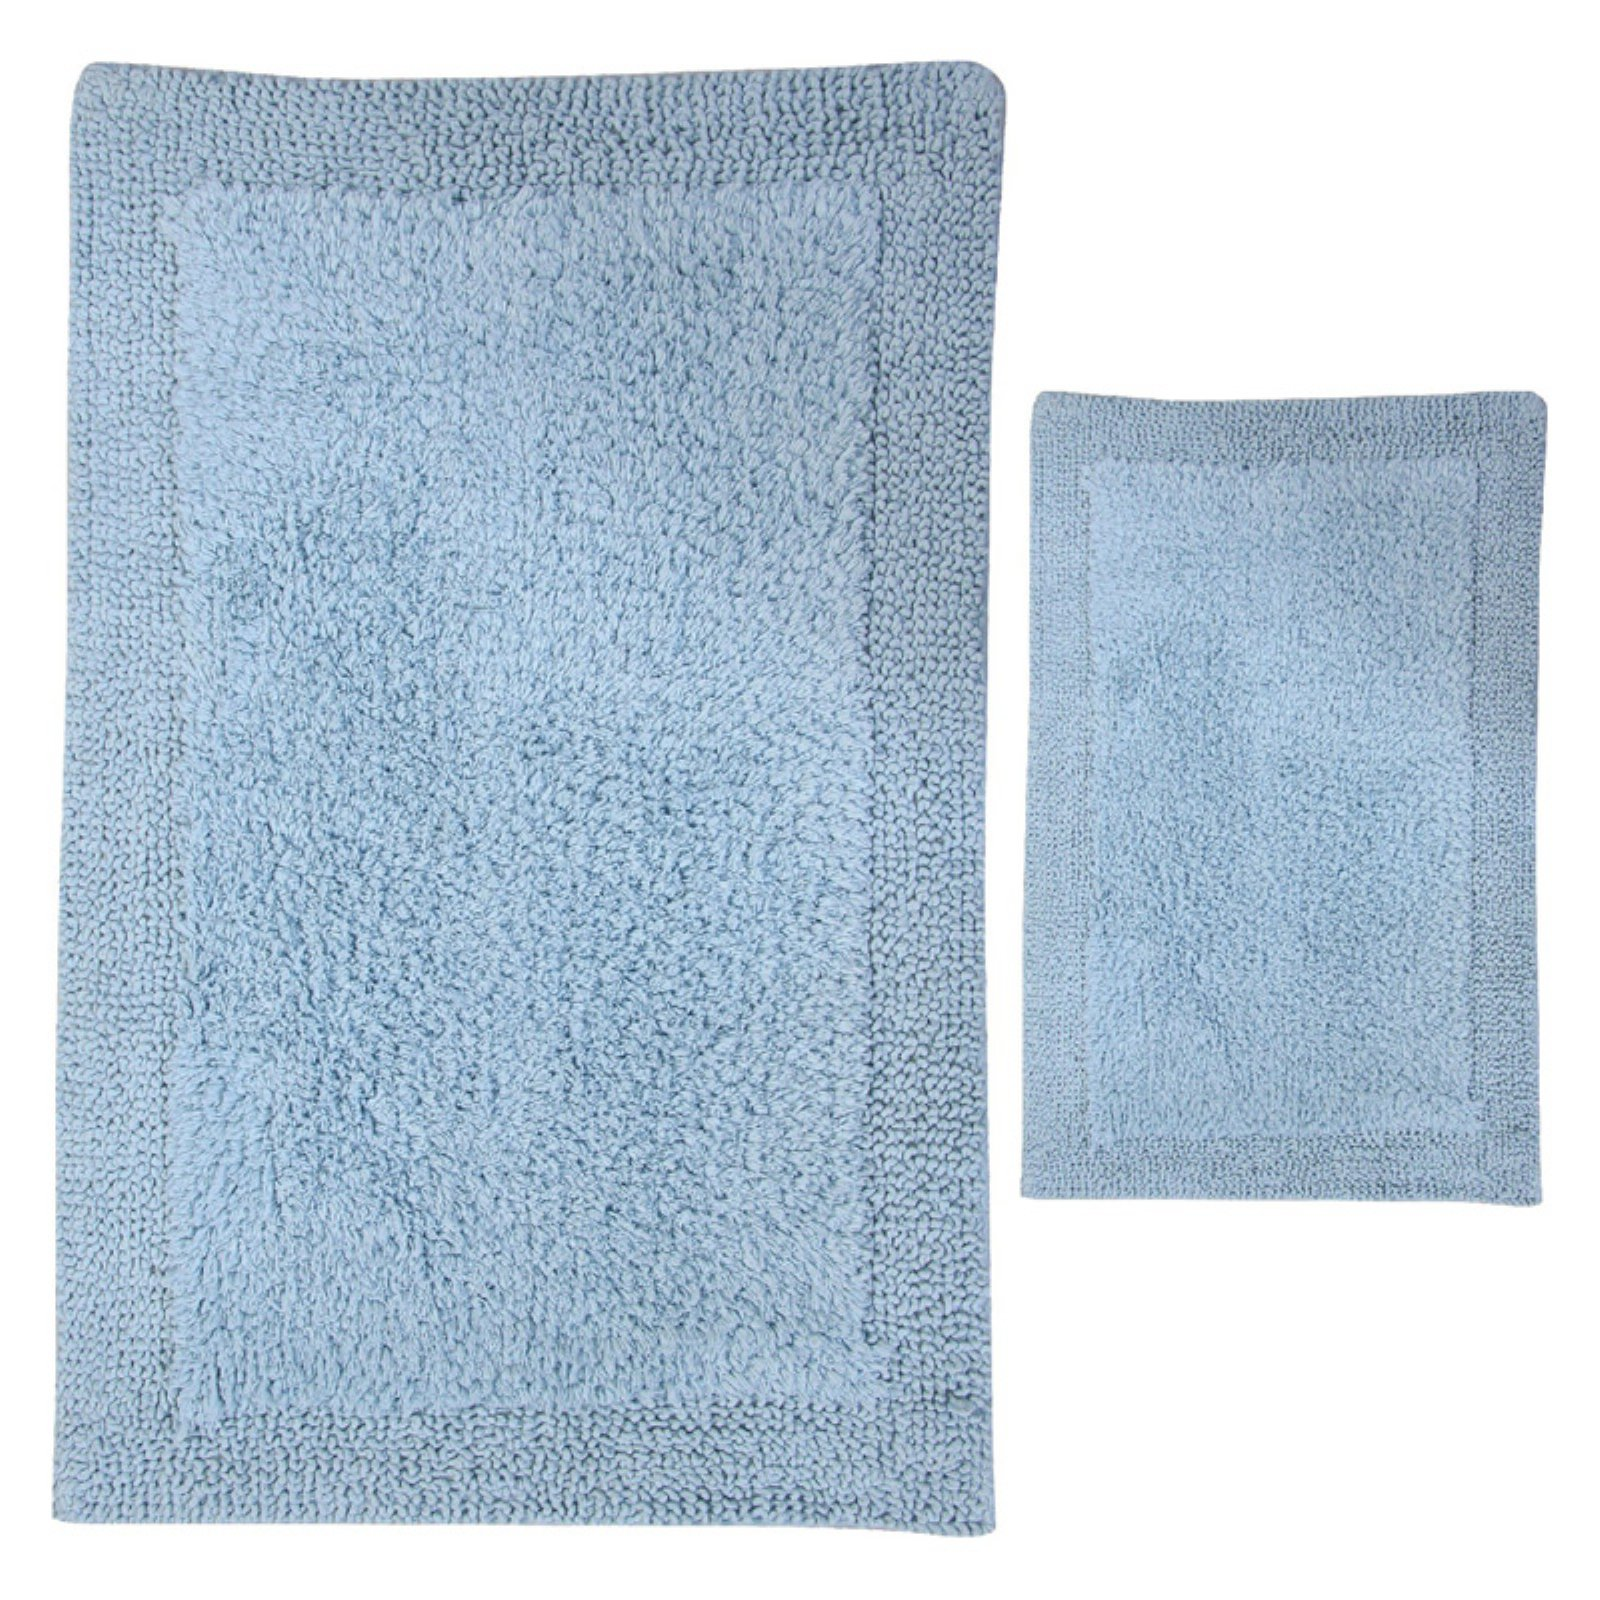 Elegance Collection Bella Napoli Bath Rug - Set of 2